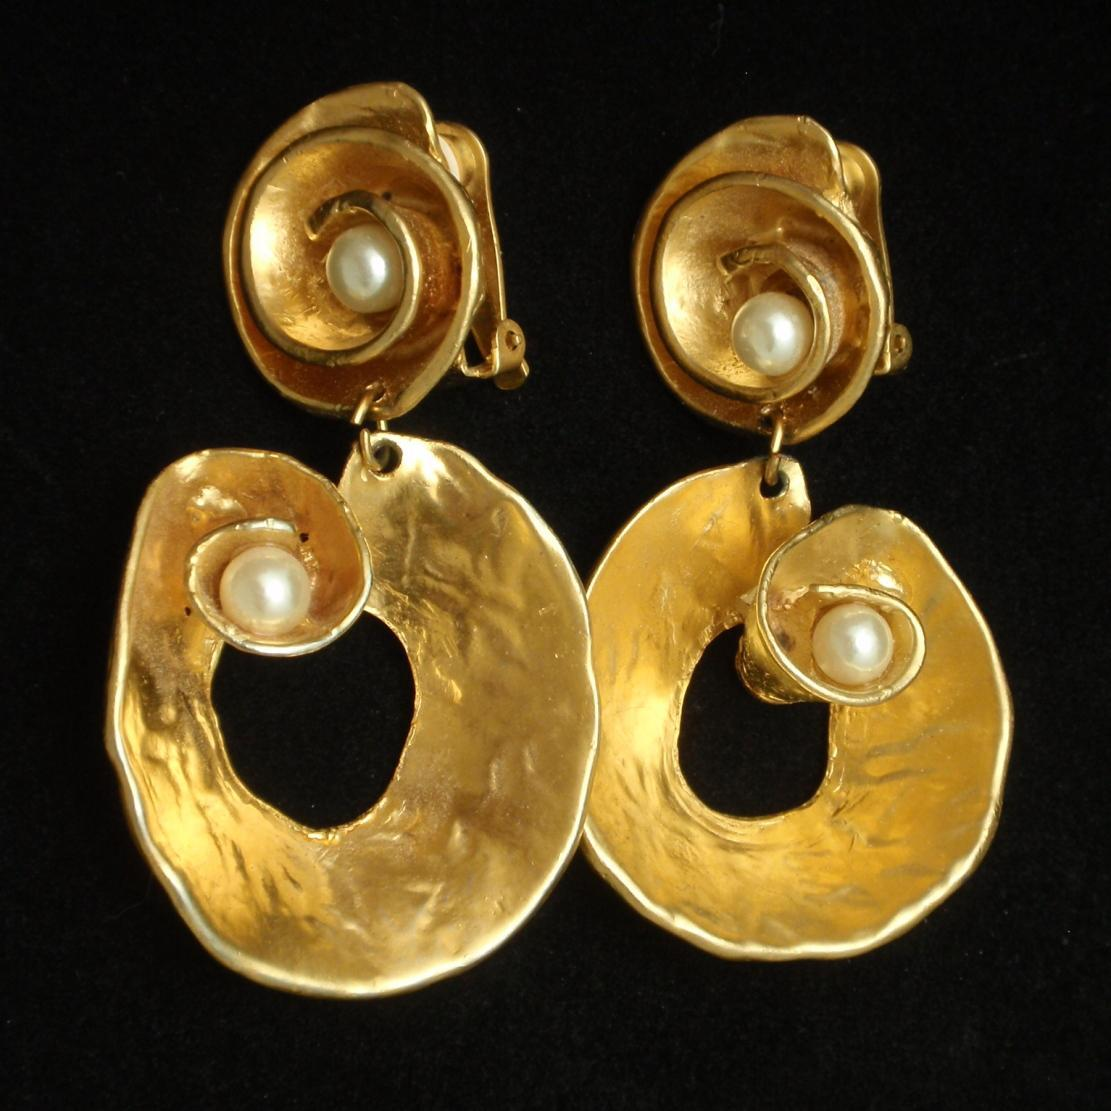 Large Gold Tone Metal Drop Earrings with Imitation Pearls Vintage